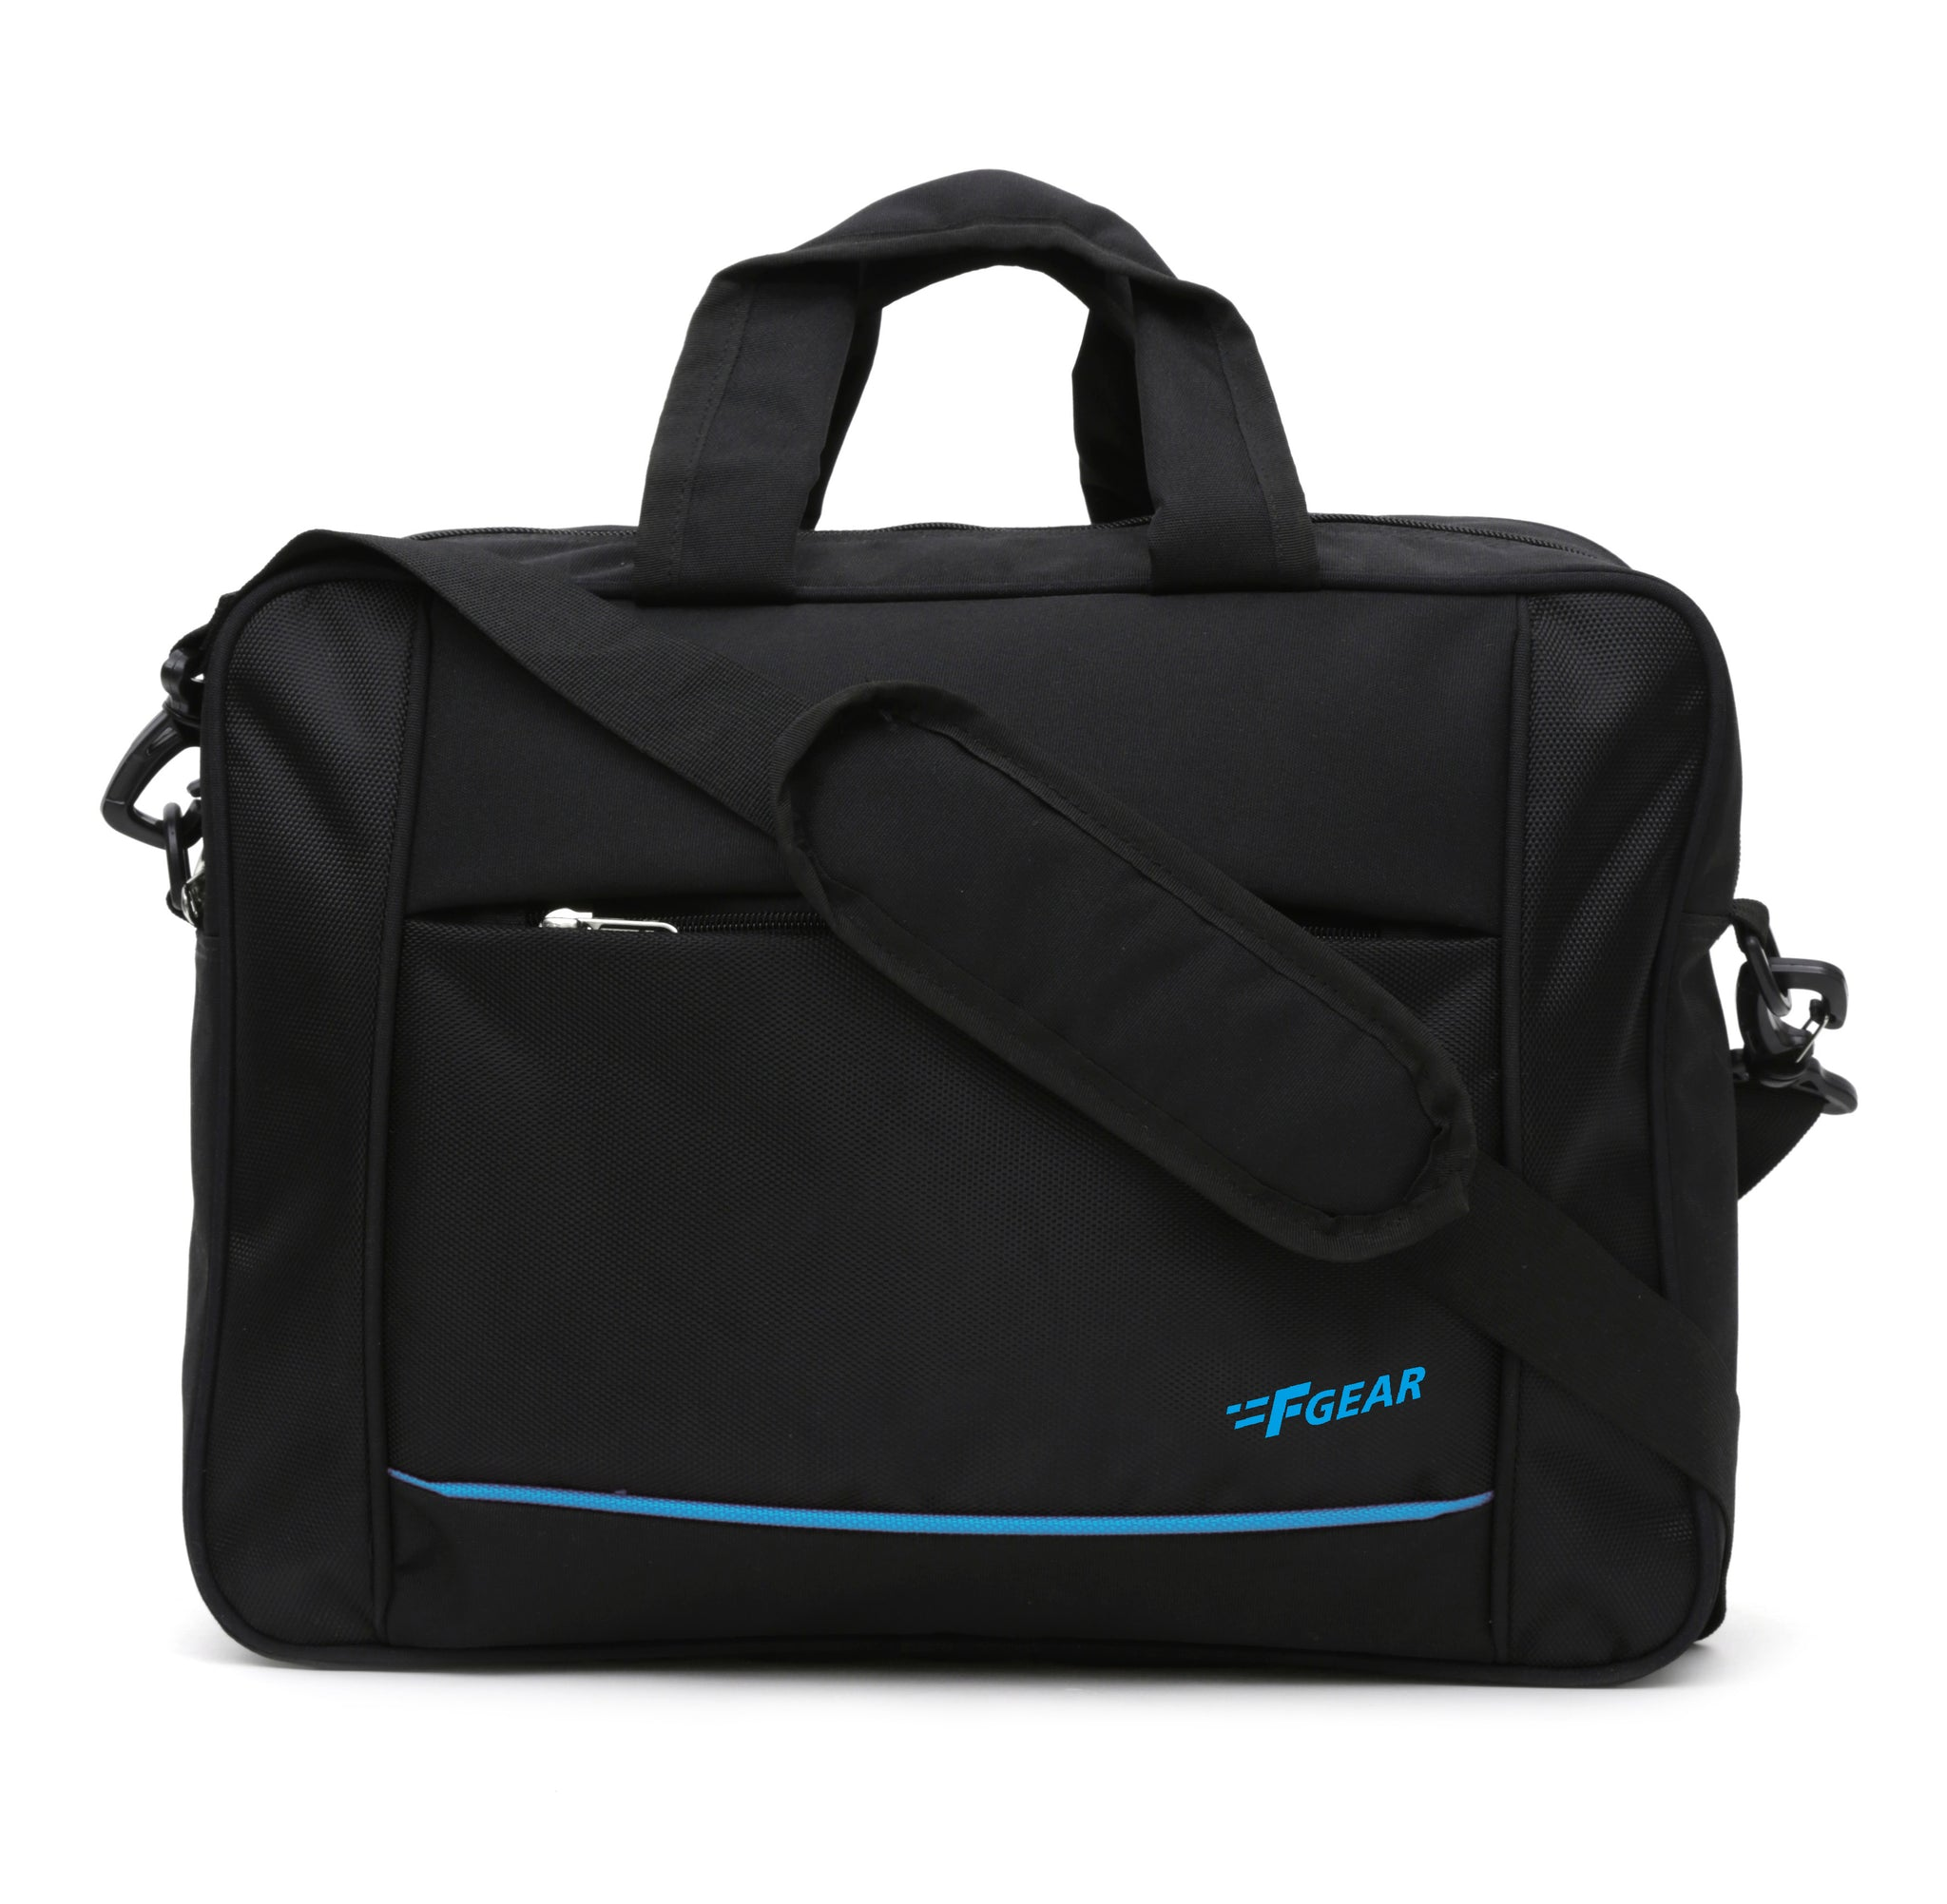 F Gear Fortis 20 Liters Laptop Bag (Black)